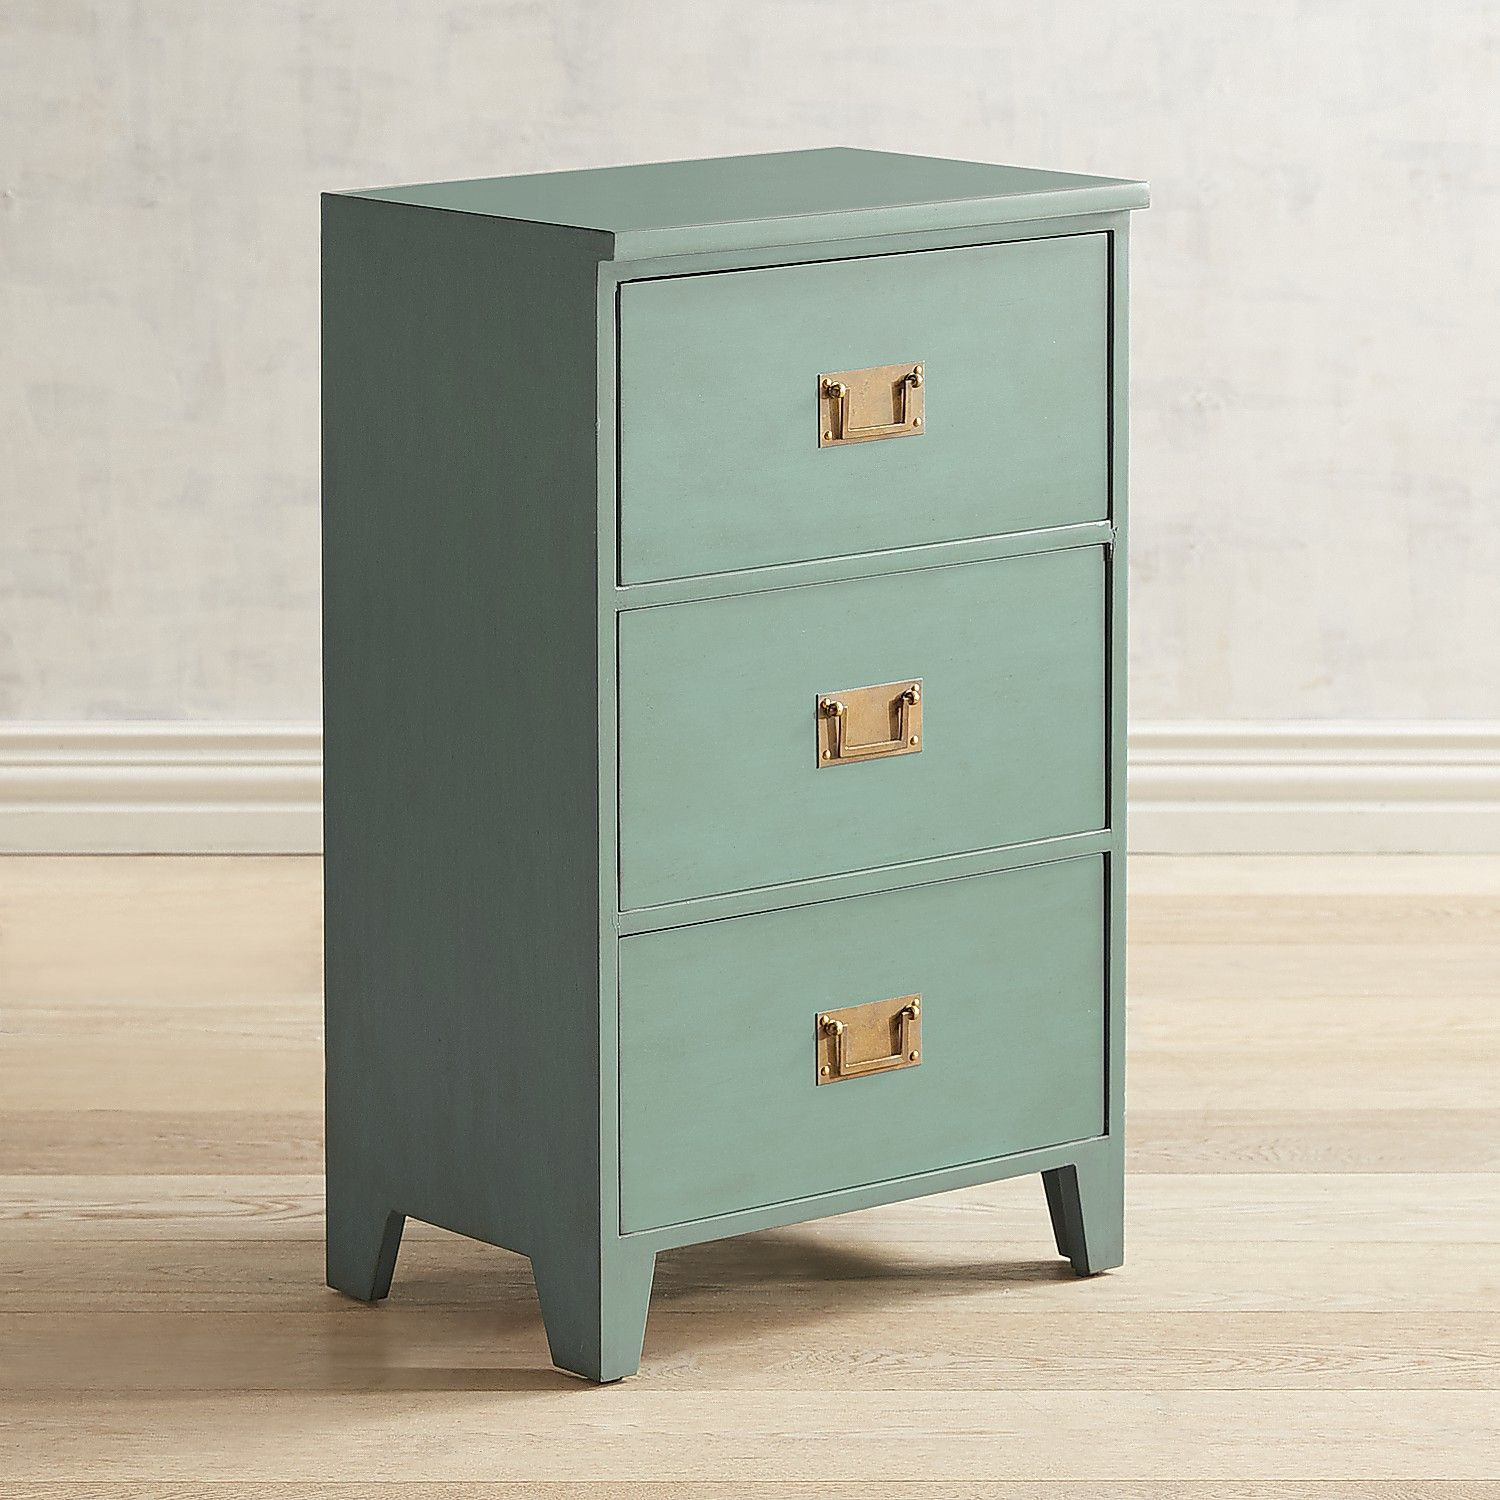 Peachy Bradford Teal 3 Drawer Chest Products Furniture Cabinet Download Free Architecture Designs Scobabritishbridgeorg